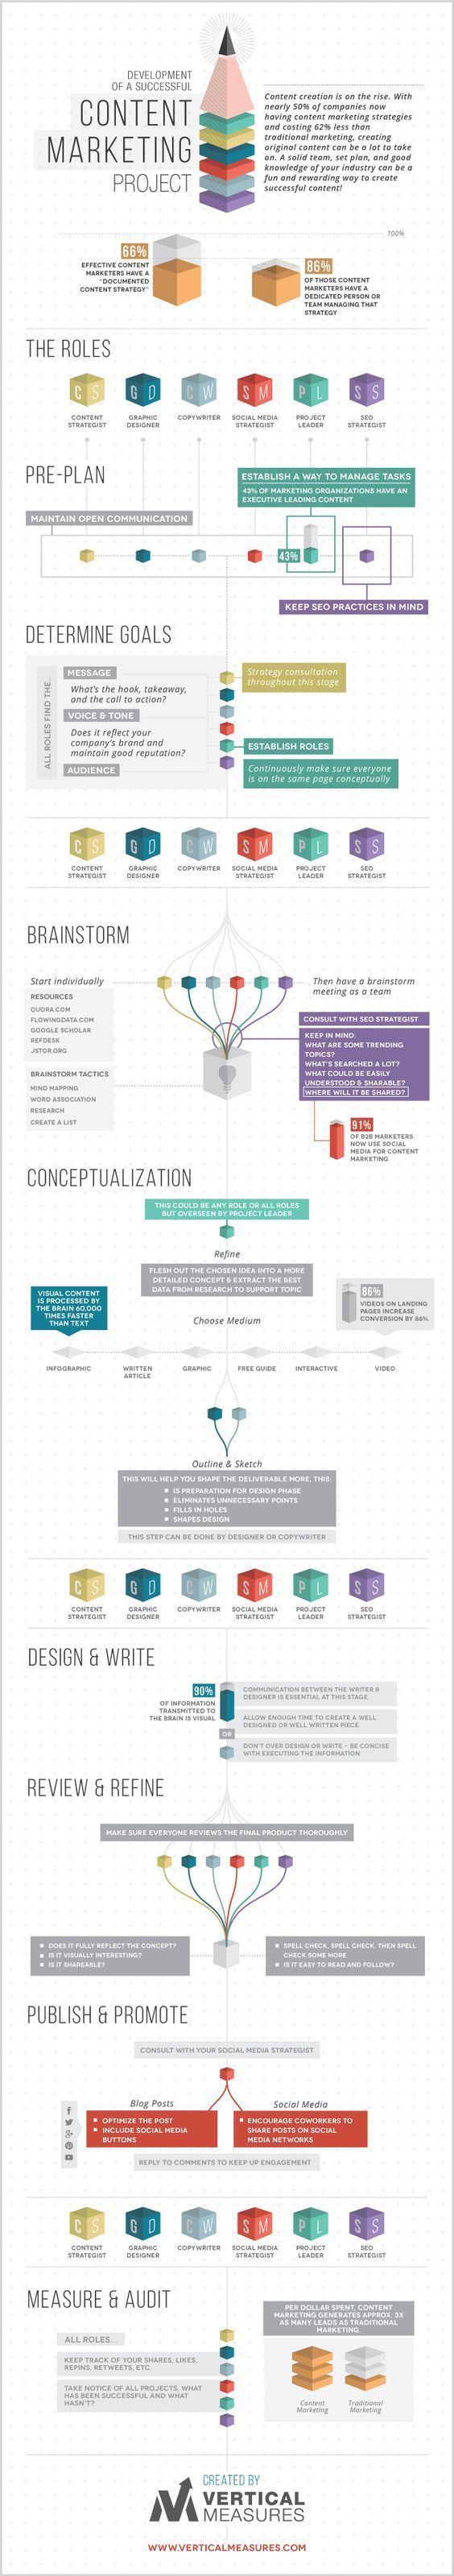 Developing A Successful Content Marketing Strategy  Infographic